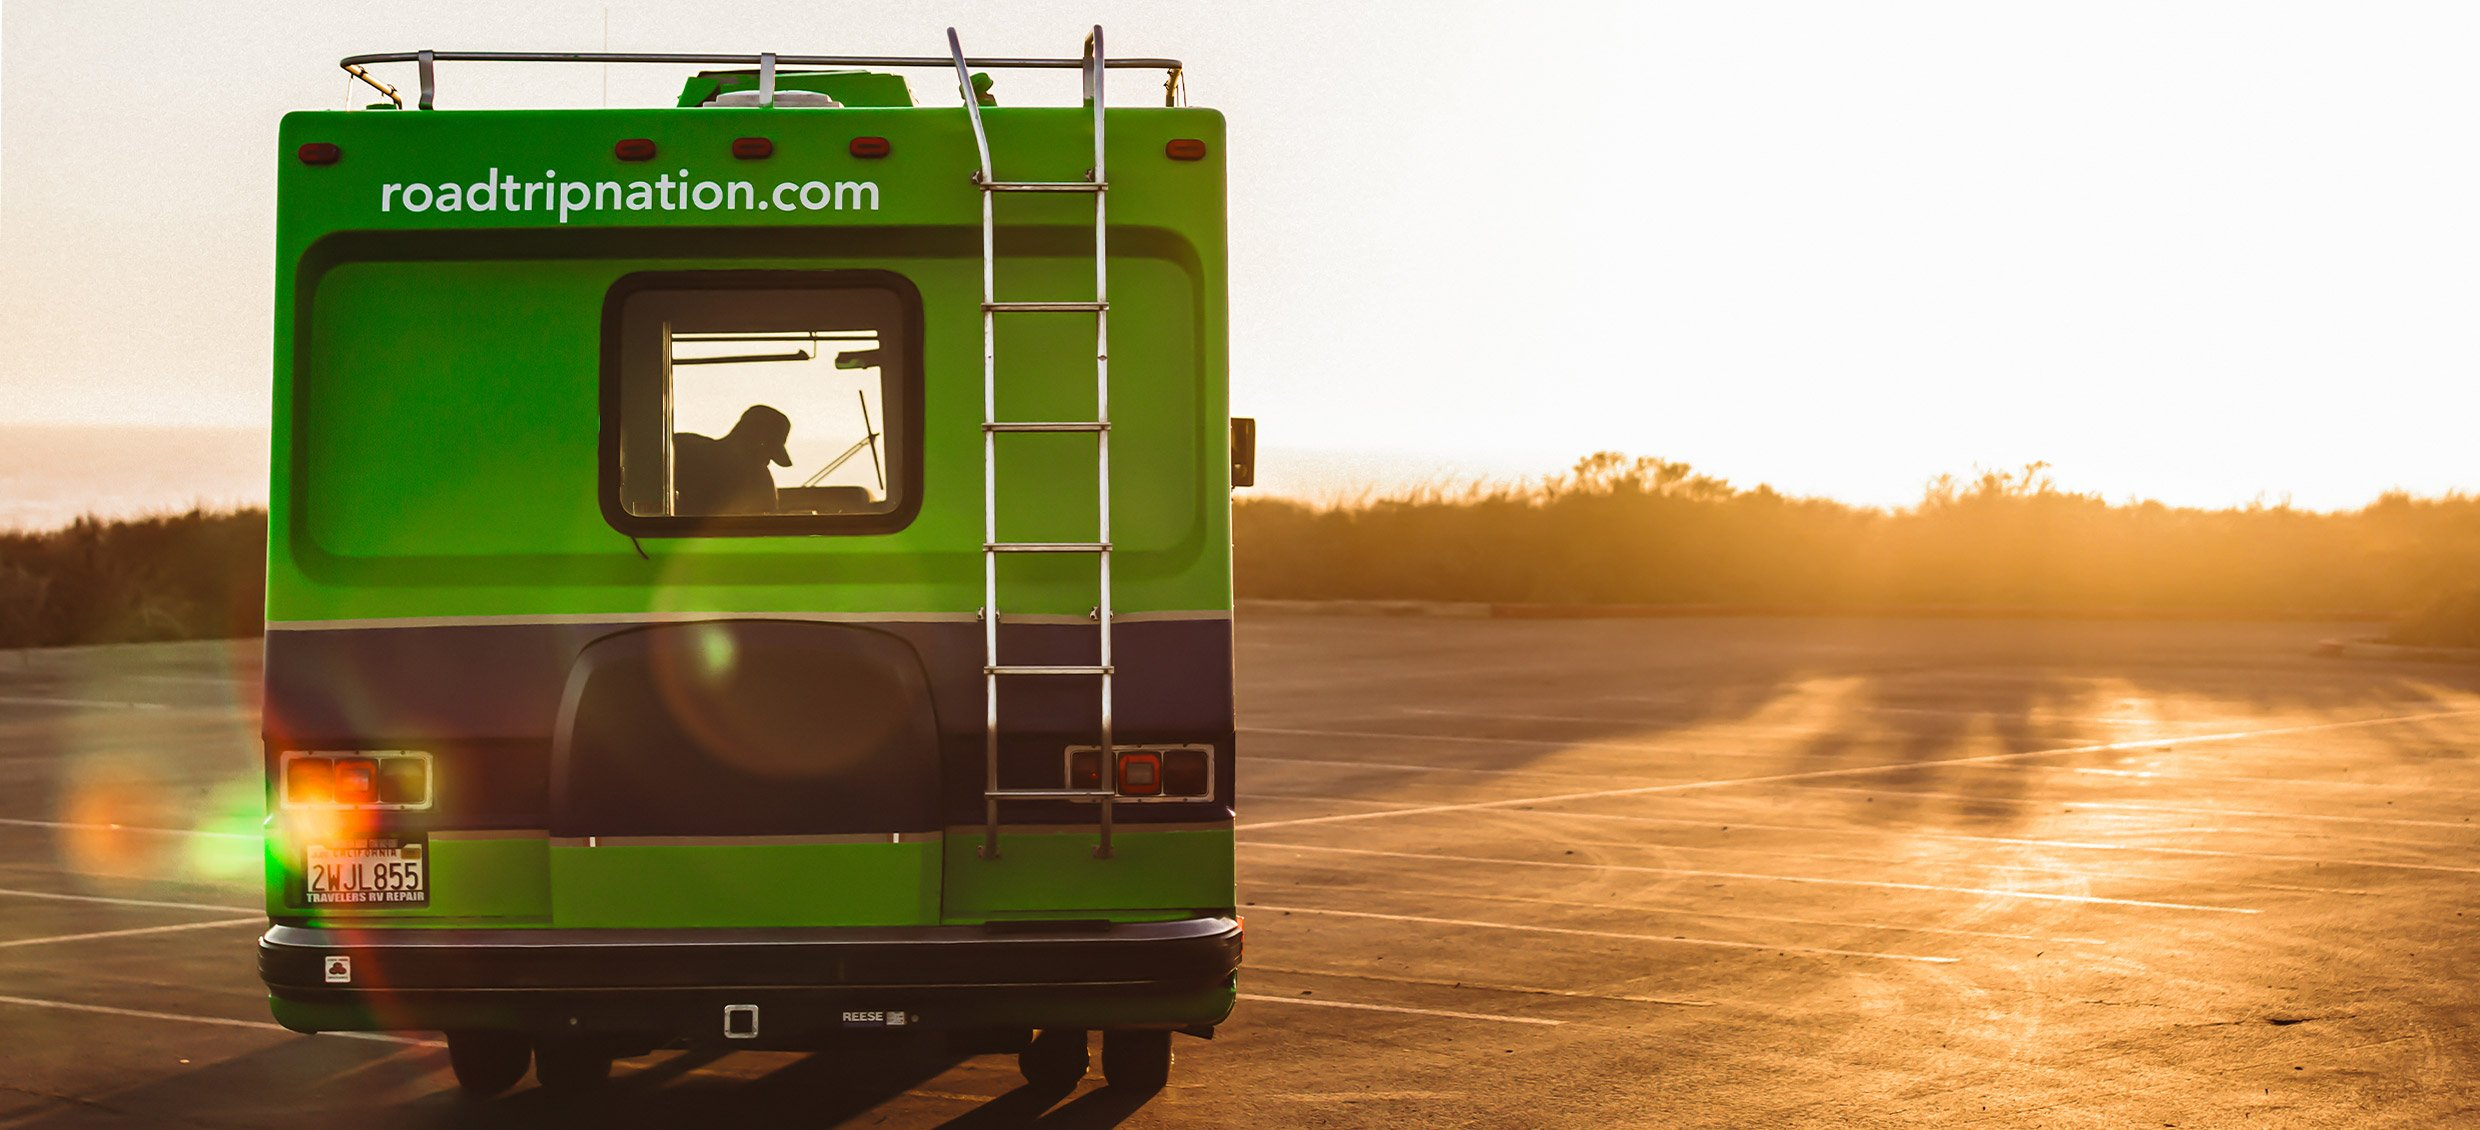 The Roadtrip Nation green RV parked in front of the sunset during golden hour.